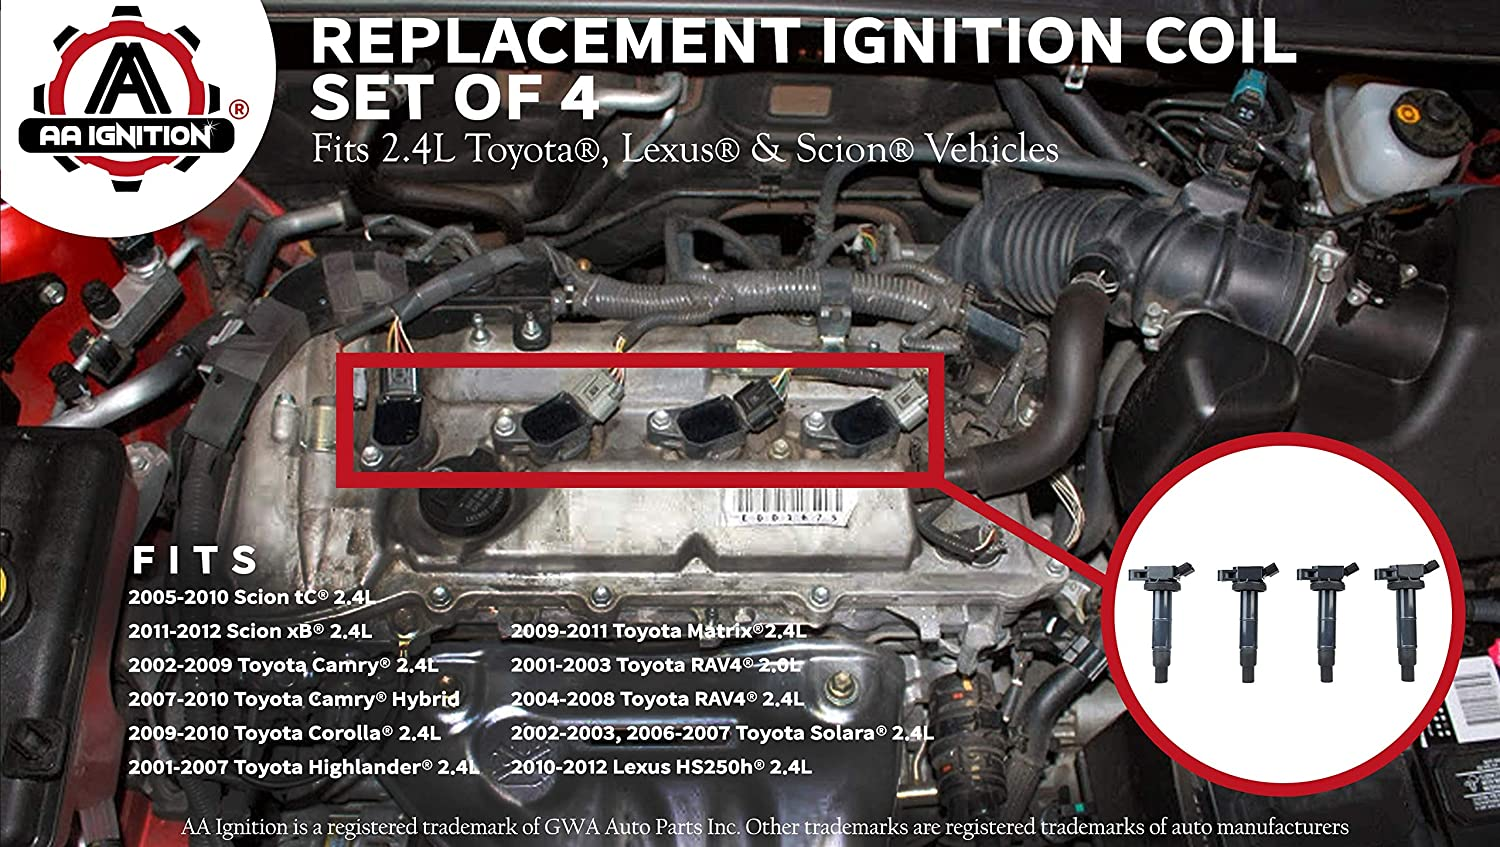 Ignition Coil Pack Set Of 4 Fits Toyota Camry Corolla 2001 Engine Solara Rav4 Scion Tc Xb Lexus Hs250h More 20l 24l Models Replaces